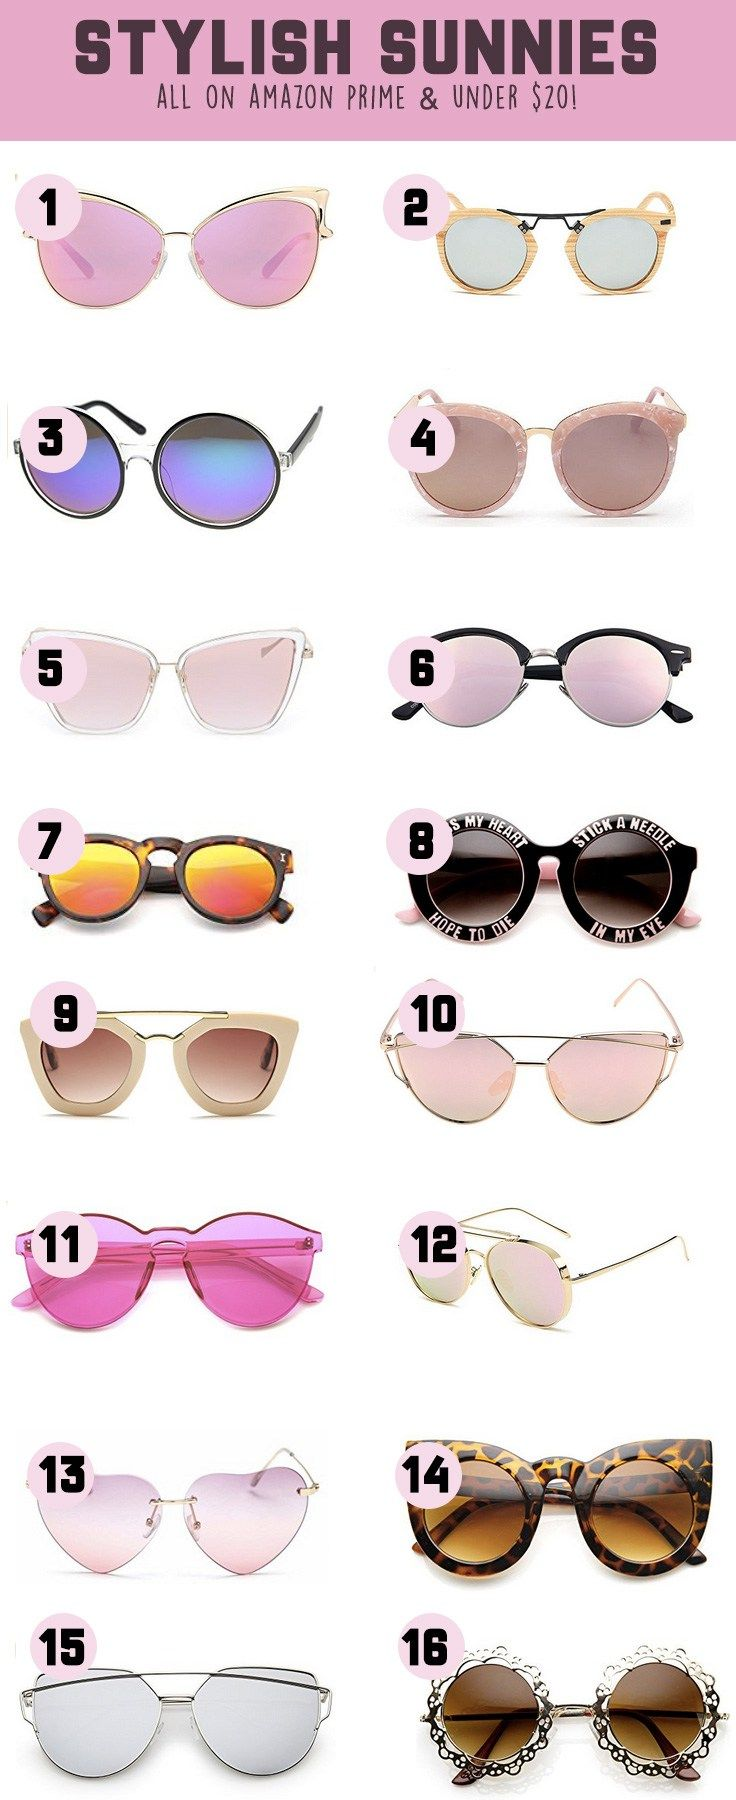 Amazon Prime Sunnies for Spring & Summer